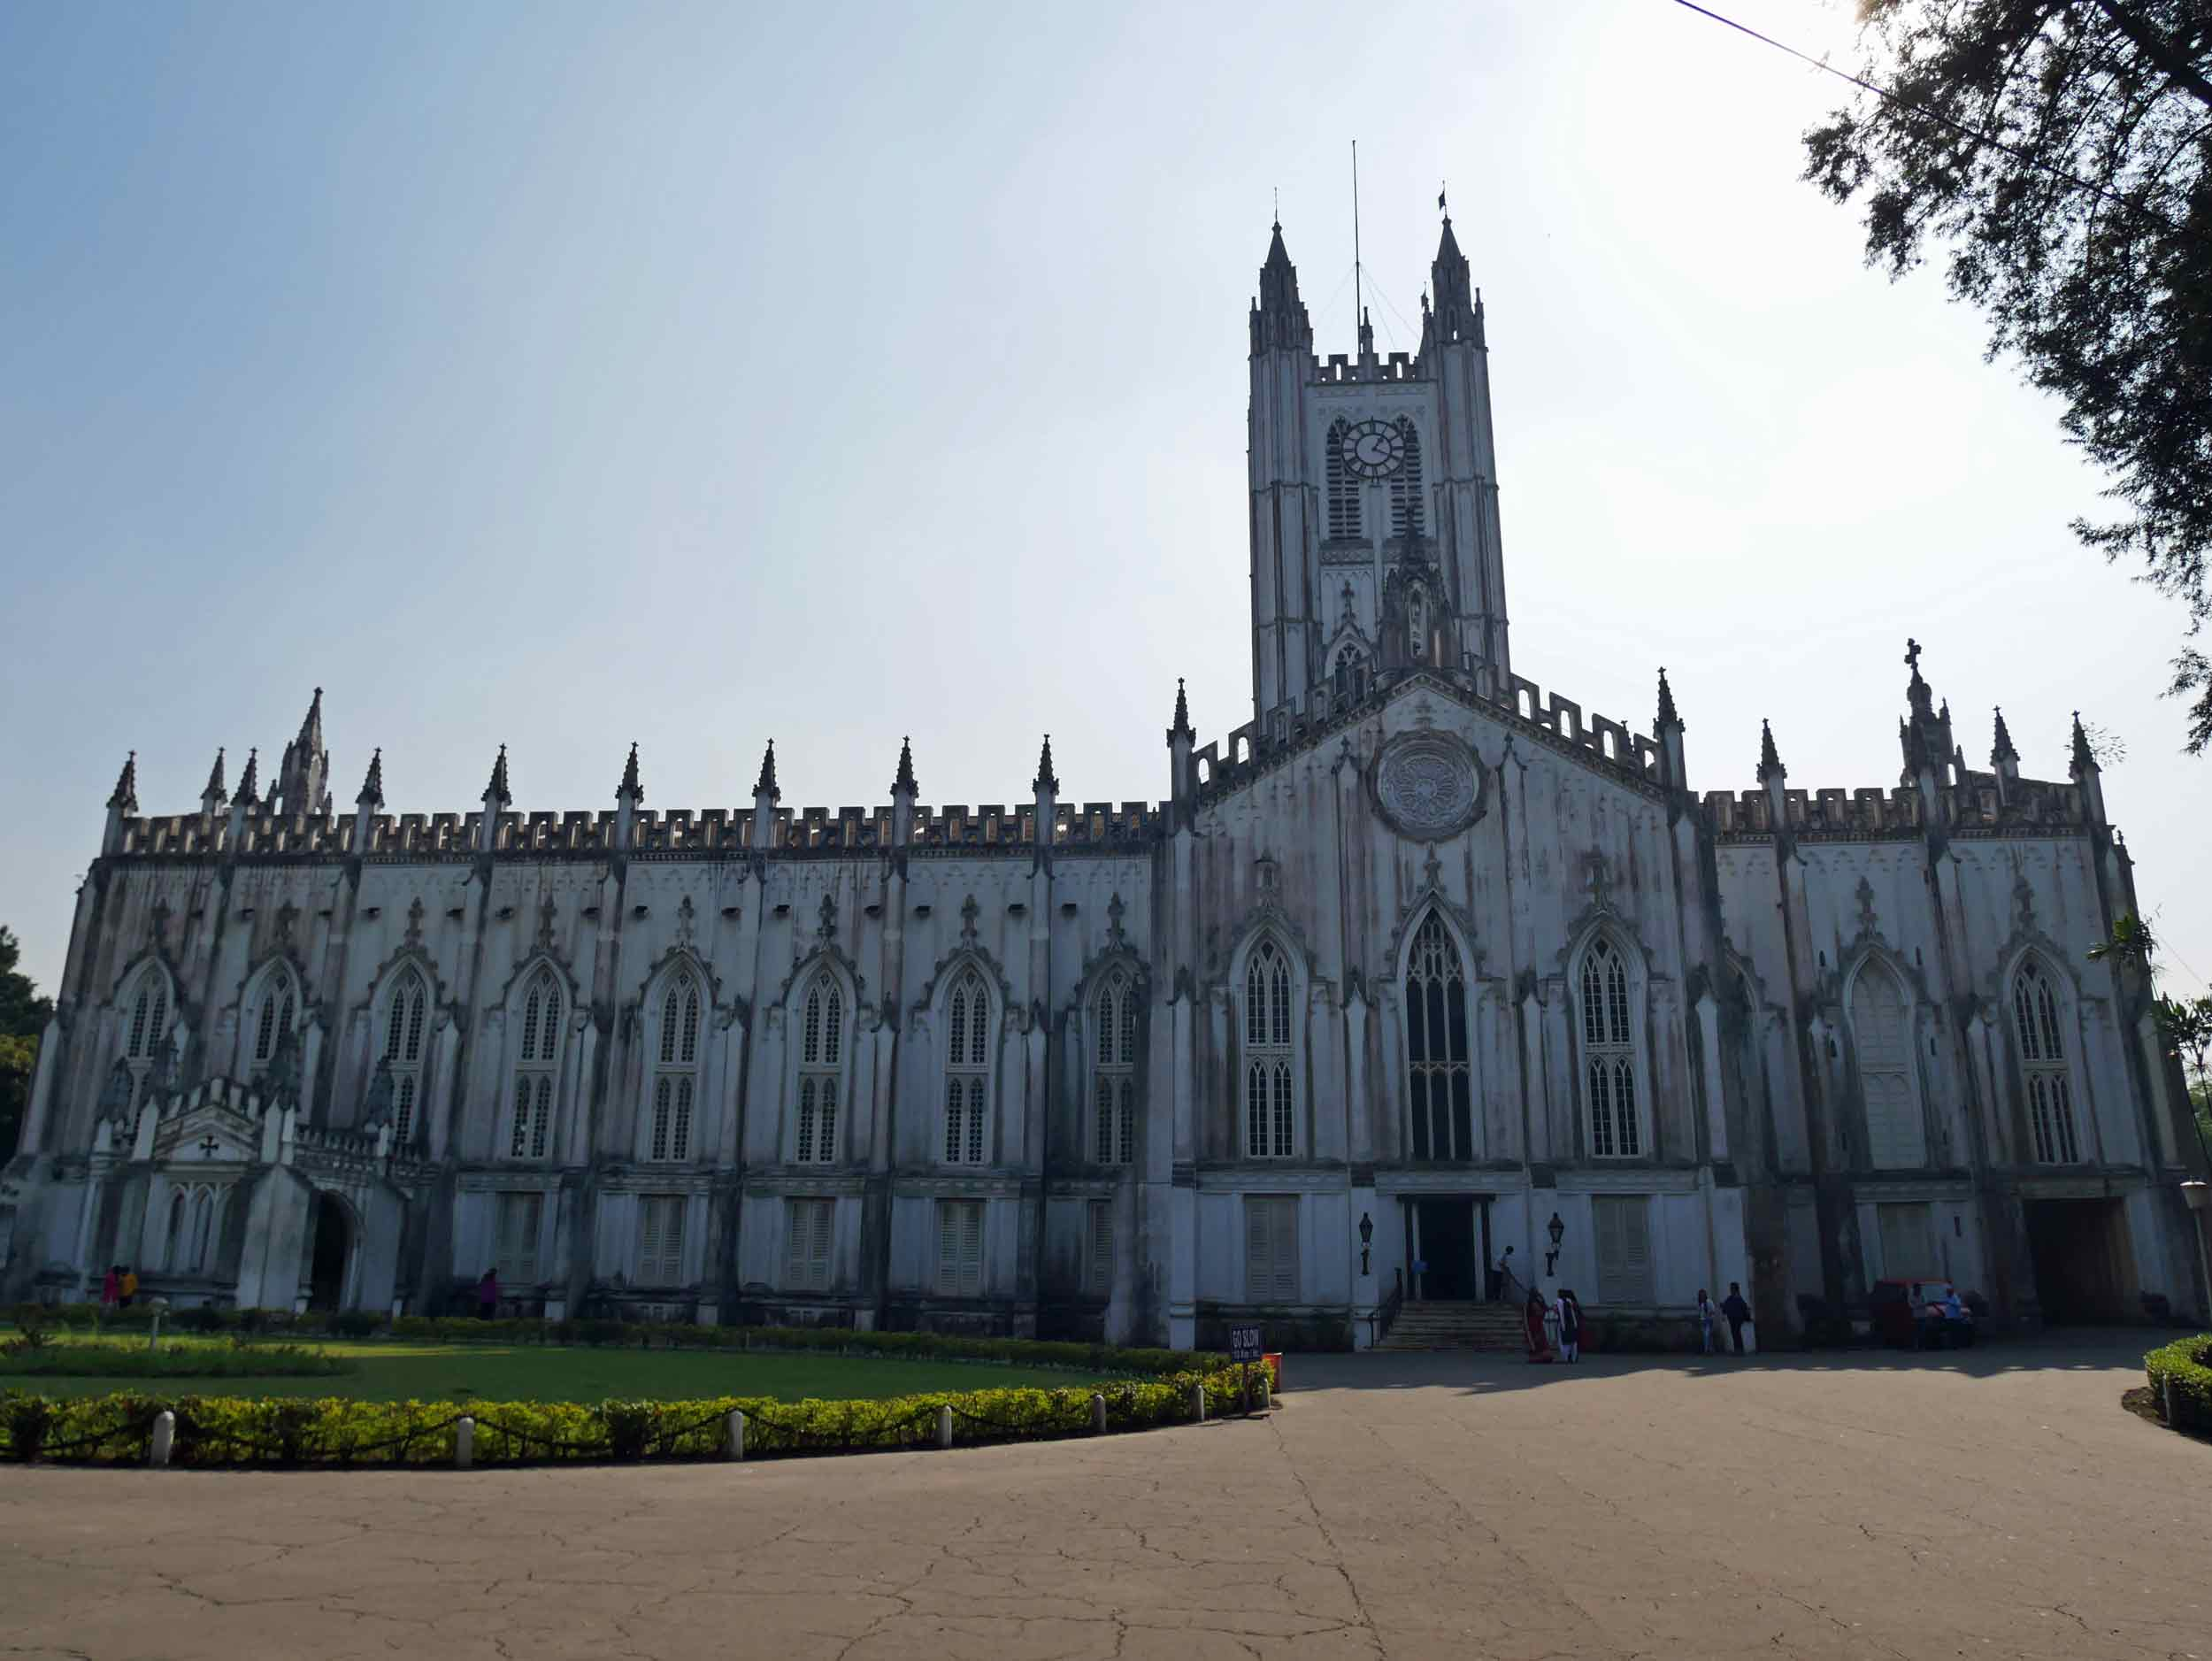 St. Paul's Cathedral is a beautiful example of Gothic architecture found along the streets of Kolkata.